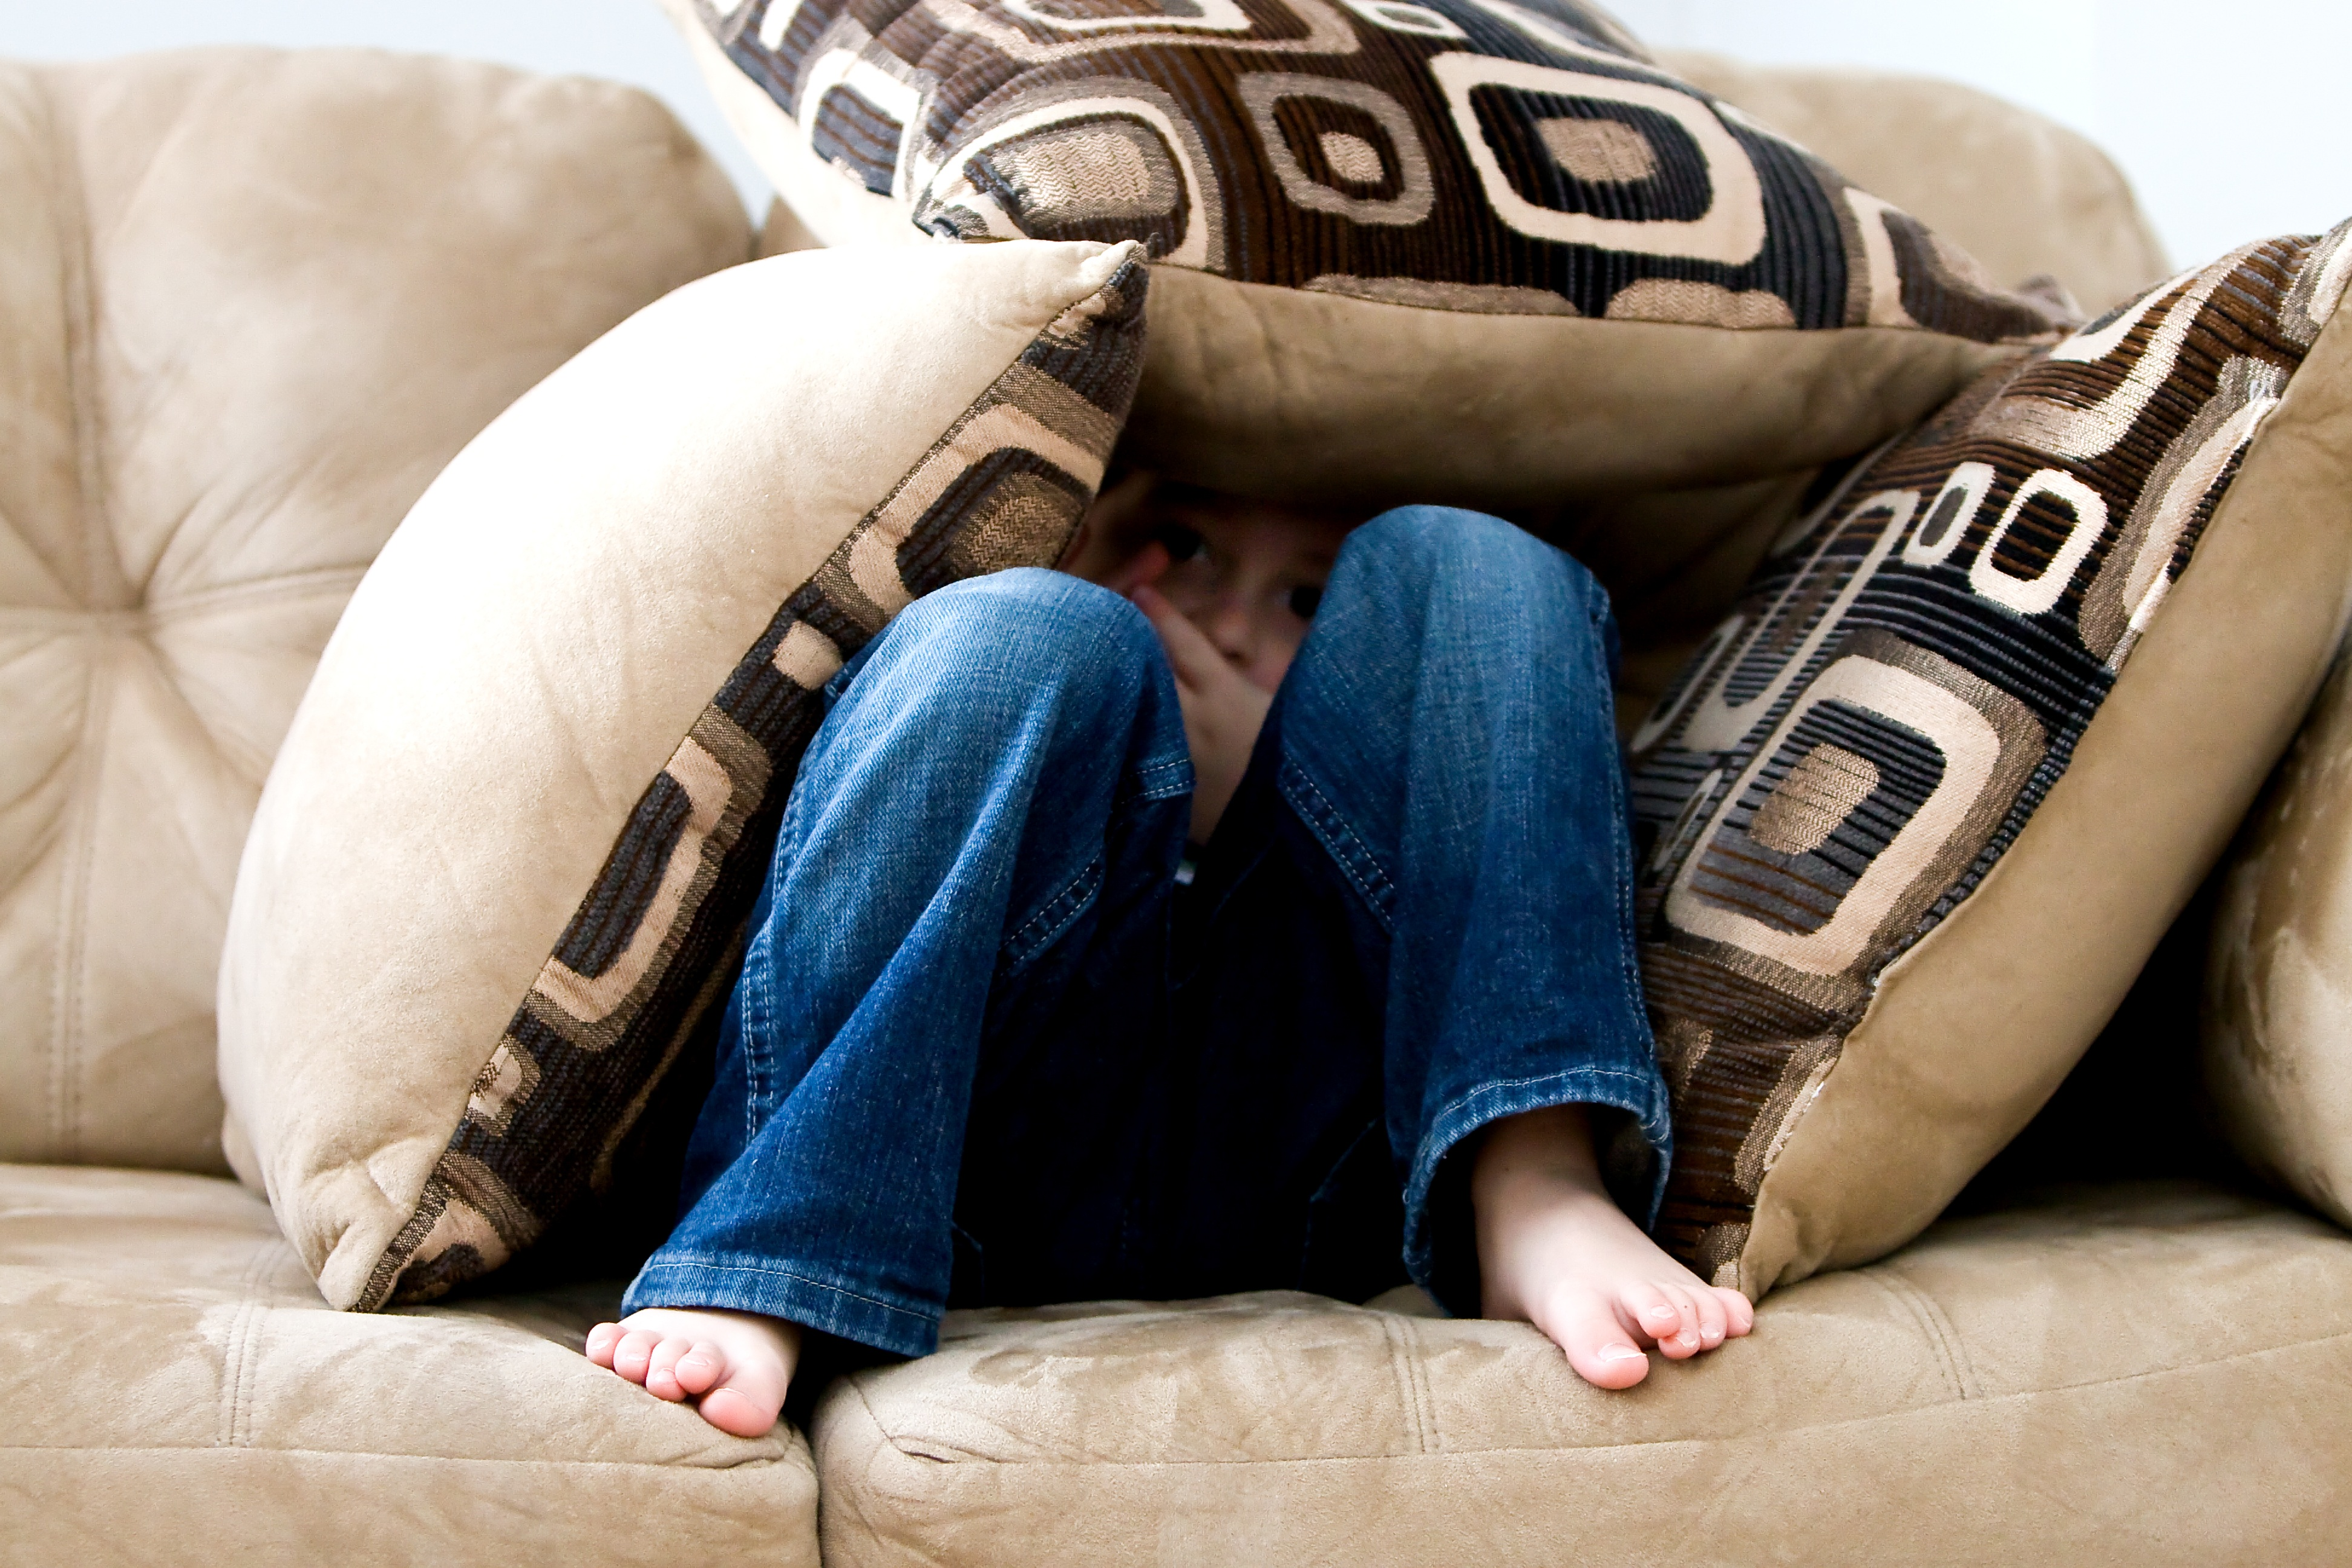 sitting on sofa with pillows over head